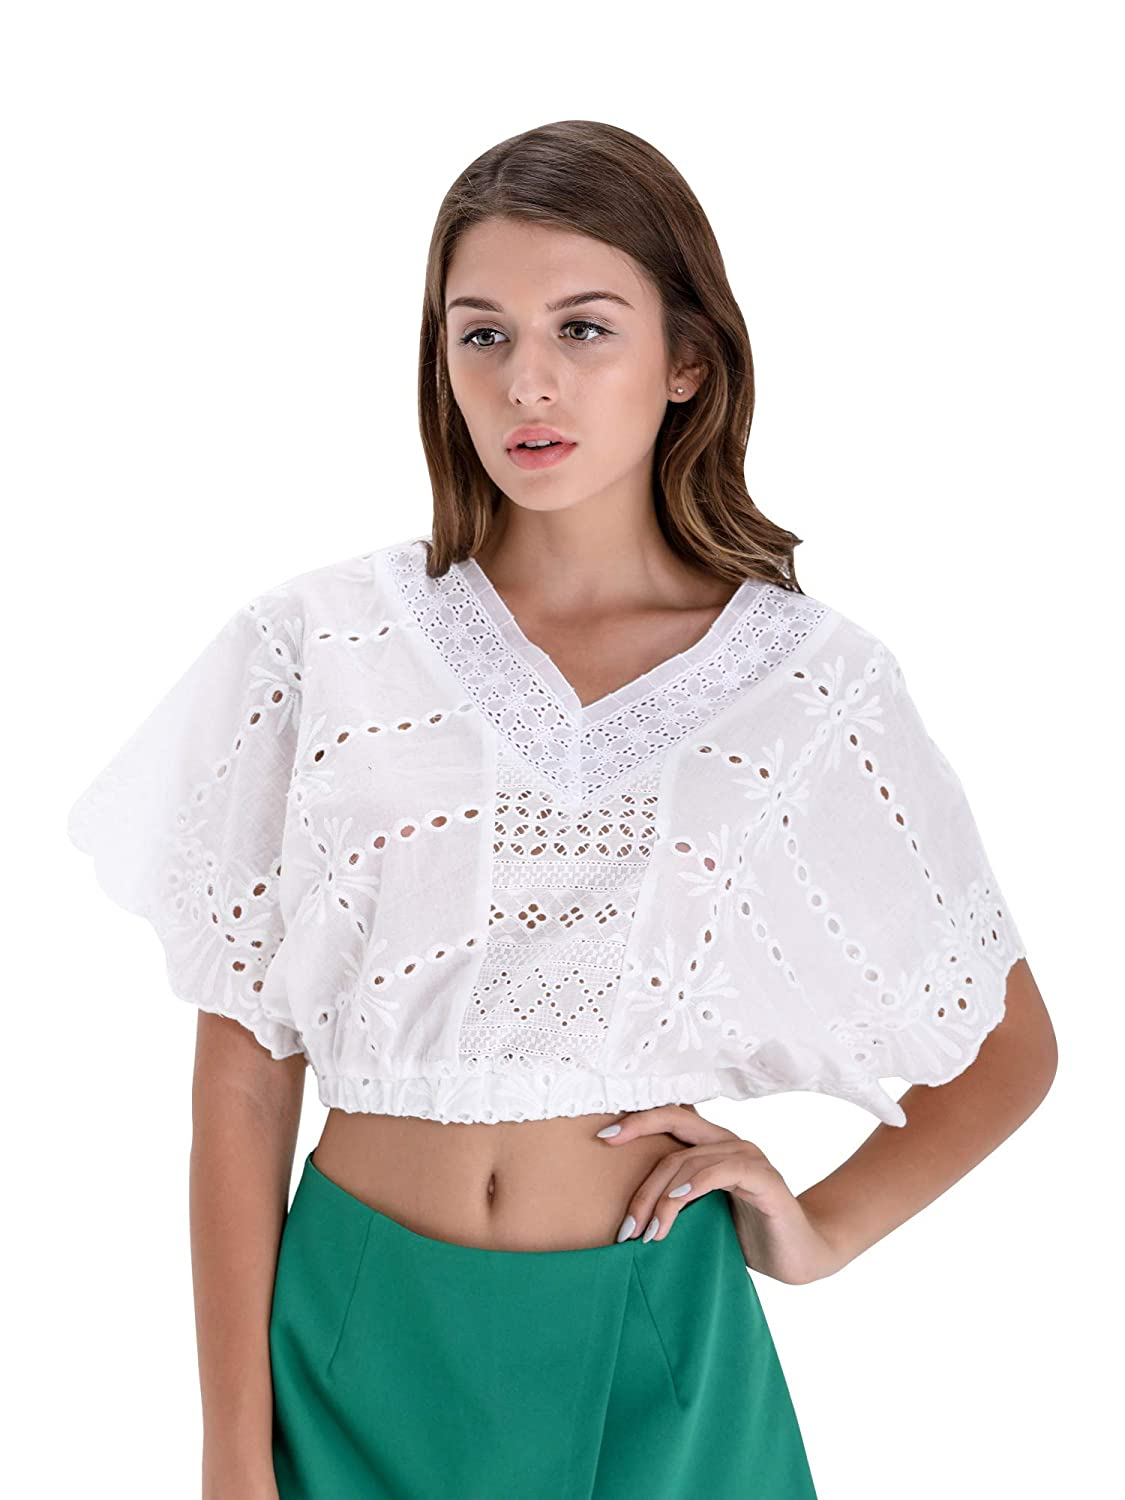 d654108af1613 BARGOOS Women's Summer Off Shoulder Lace Floral Elastic 3/4 Sleeves Sexy  Strapless Midriff Crop Tops White at Amazon Women's Clothing store: